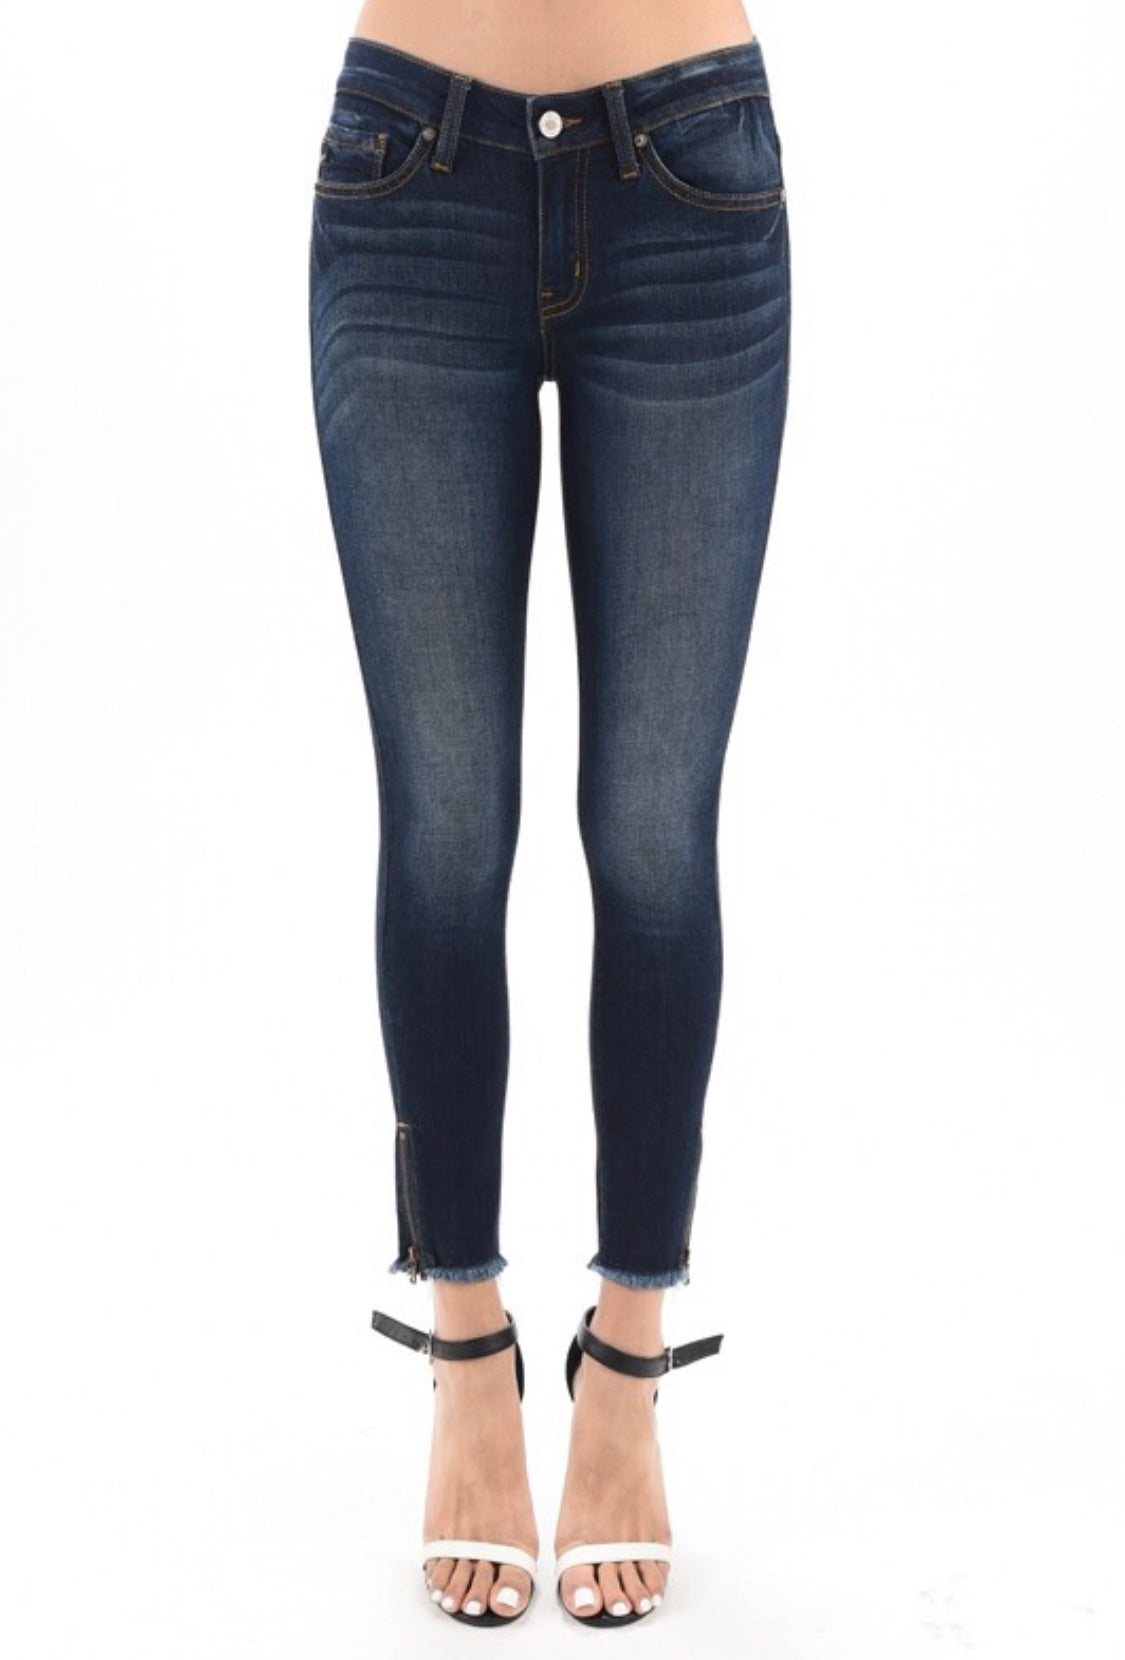 Our Obsession Zipper Jeans!